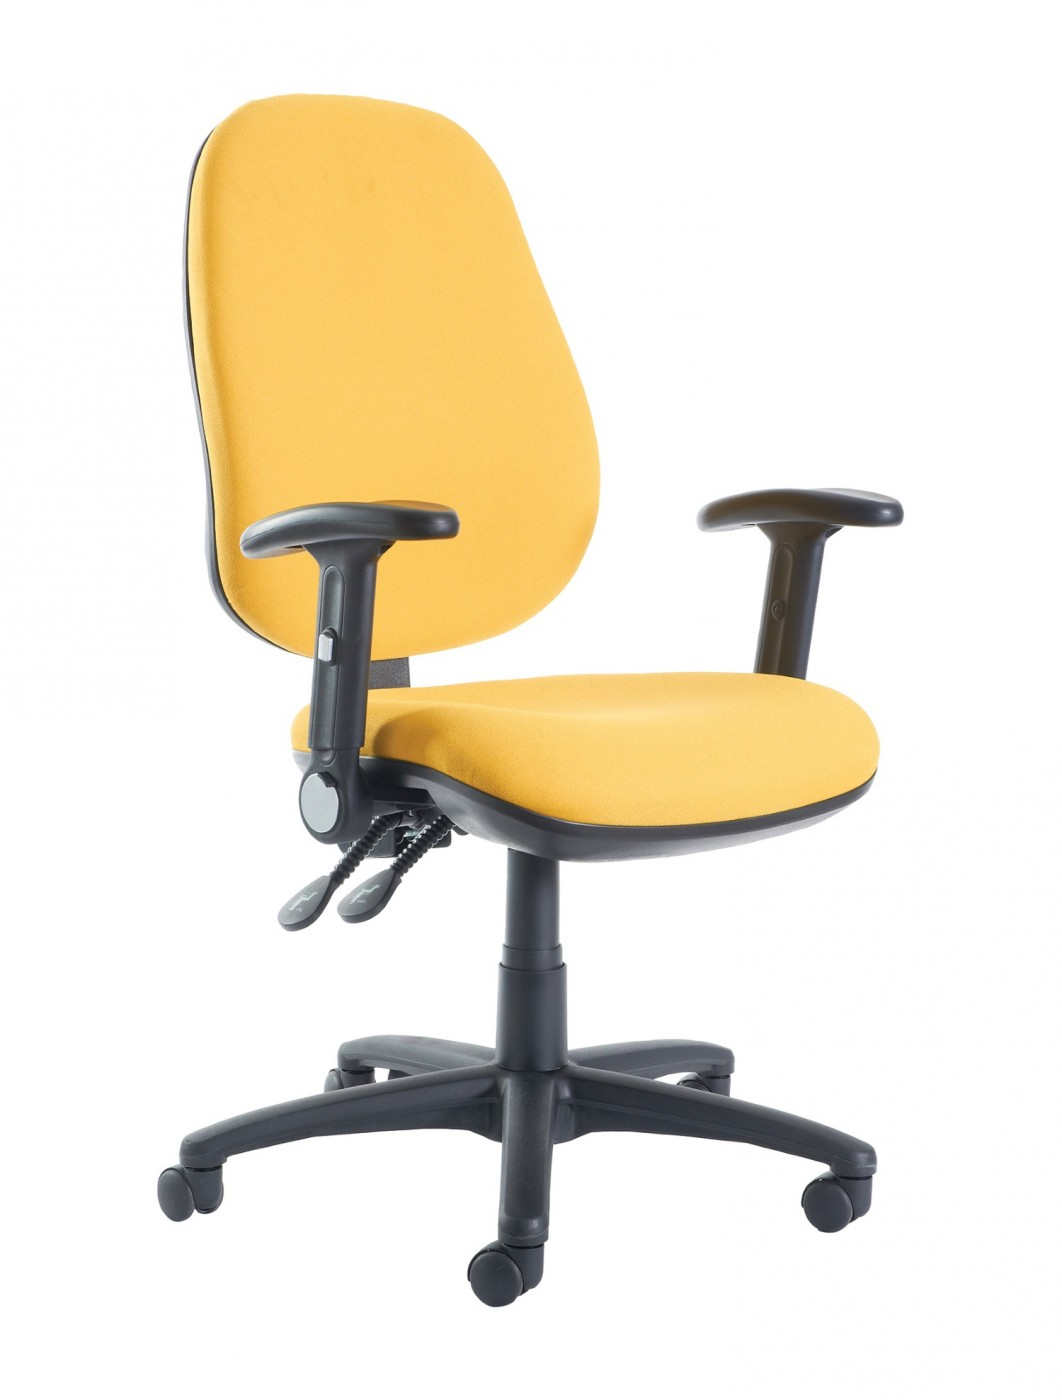 Picture of: Jota Extra High Back Office Chair Jx46 000 By Dams 121 Office Furniture